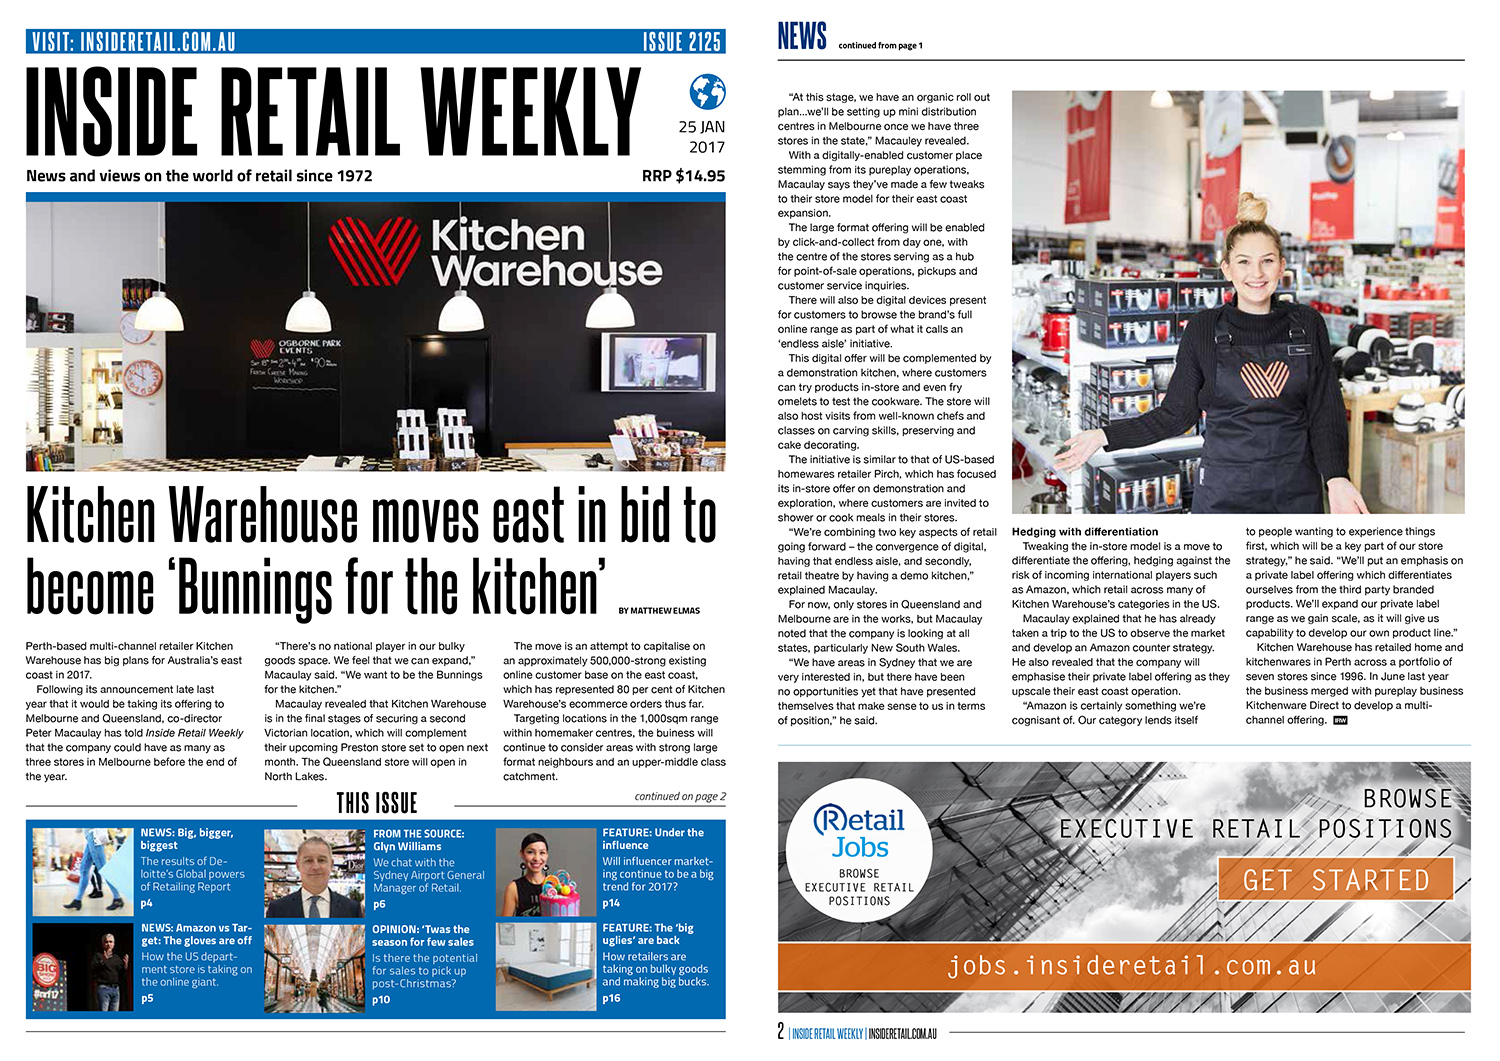 Inside Retail article featuring Kitchen Warehouse moves east